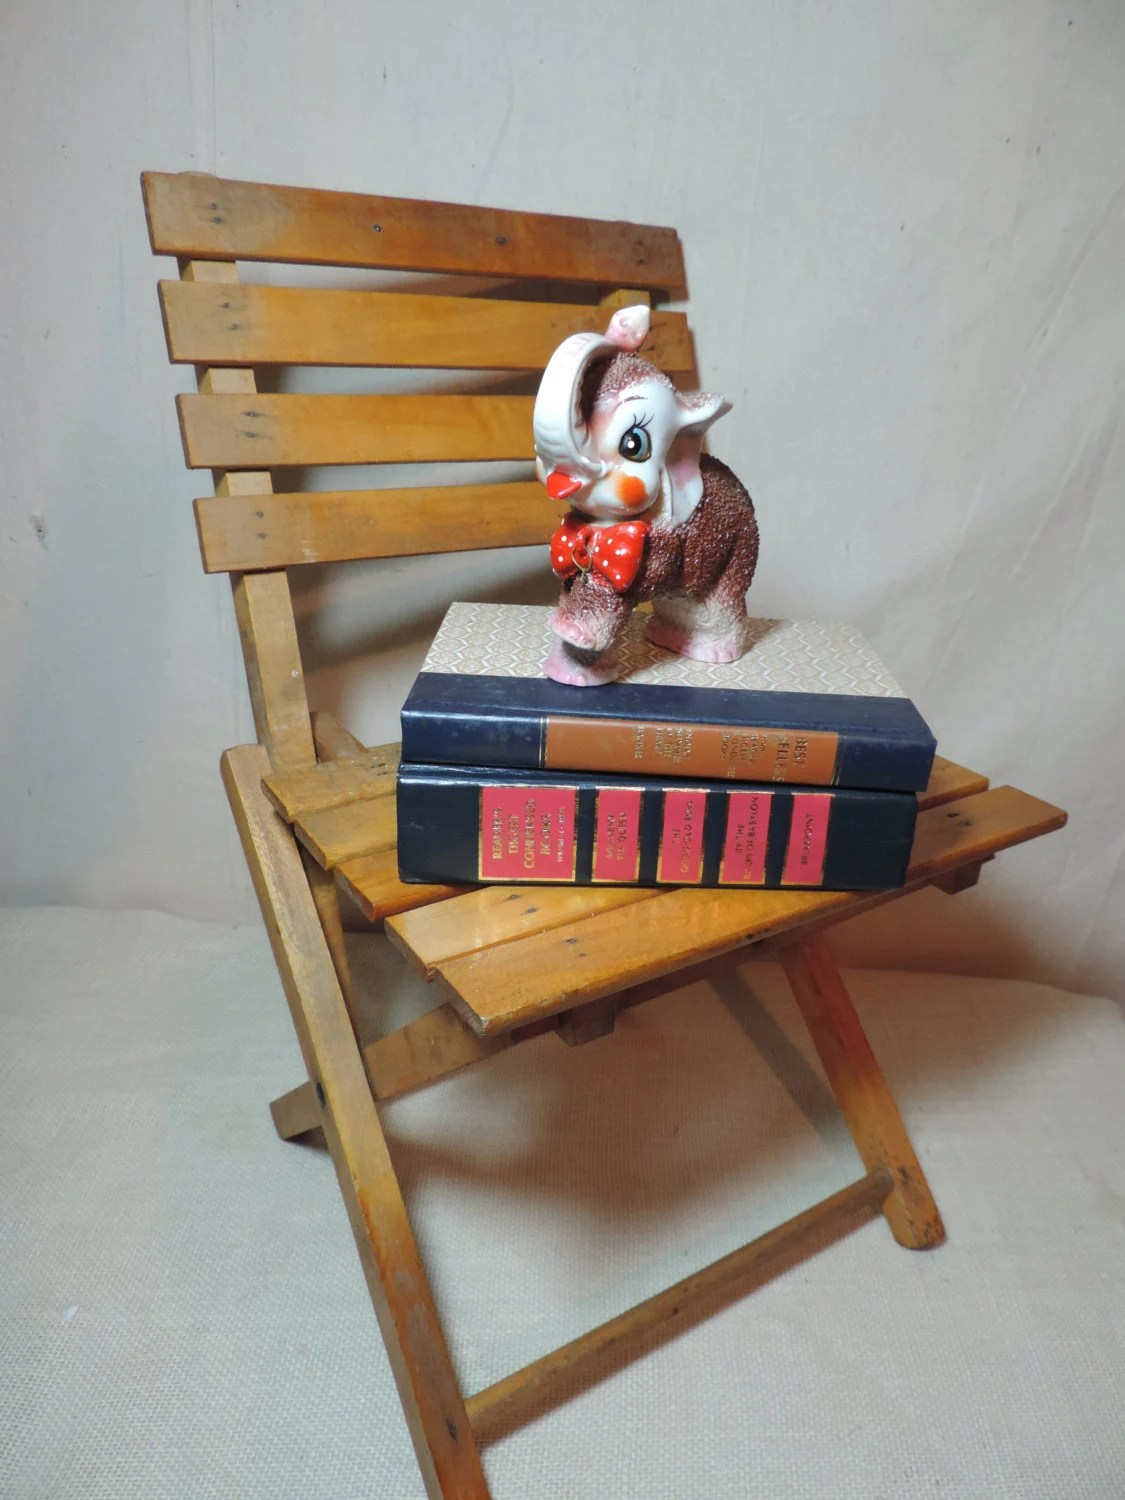 Fold Up Chairs Vintage Childs Chair Wood Chair Fold Up Chair By Bluejeanjulie